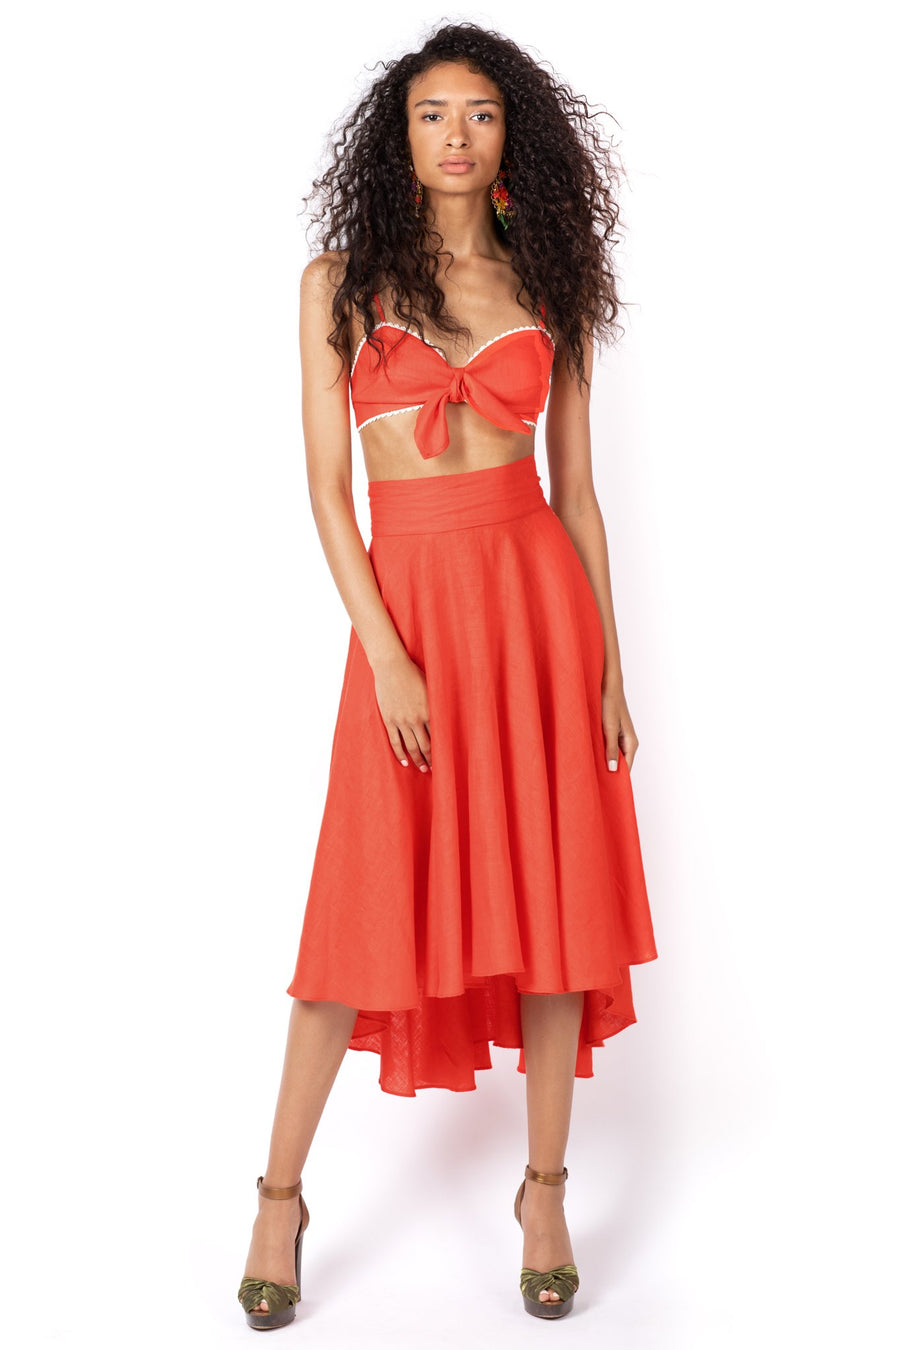 This is a photo of a woman wearing a bright red, crochet trimmed, tie front, linen bralette. Paired with a matching bright red, calf length, linen skirt.